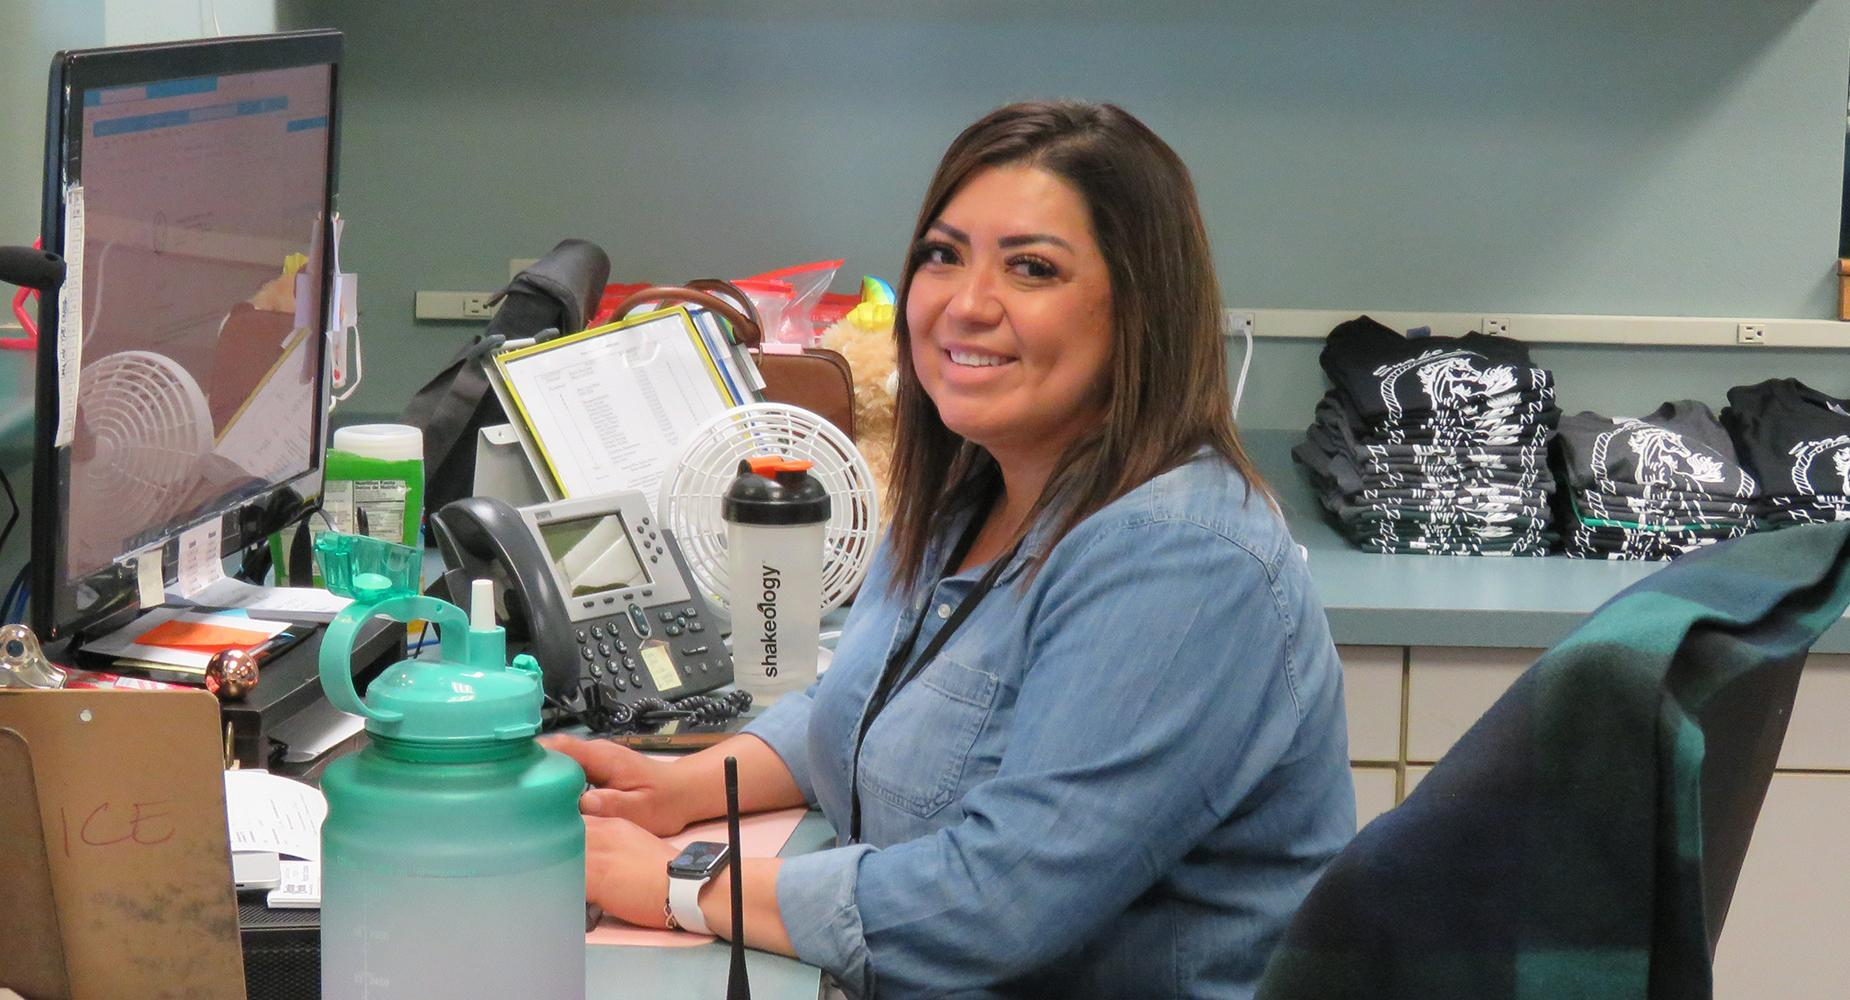 School secretary sitting at her front office desk faces the camera and smiles